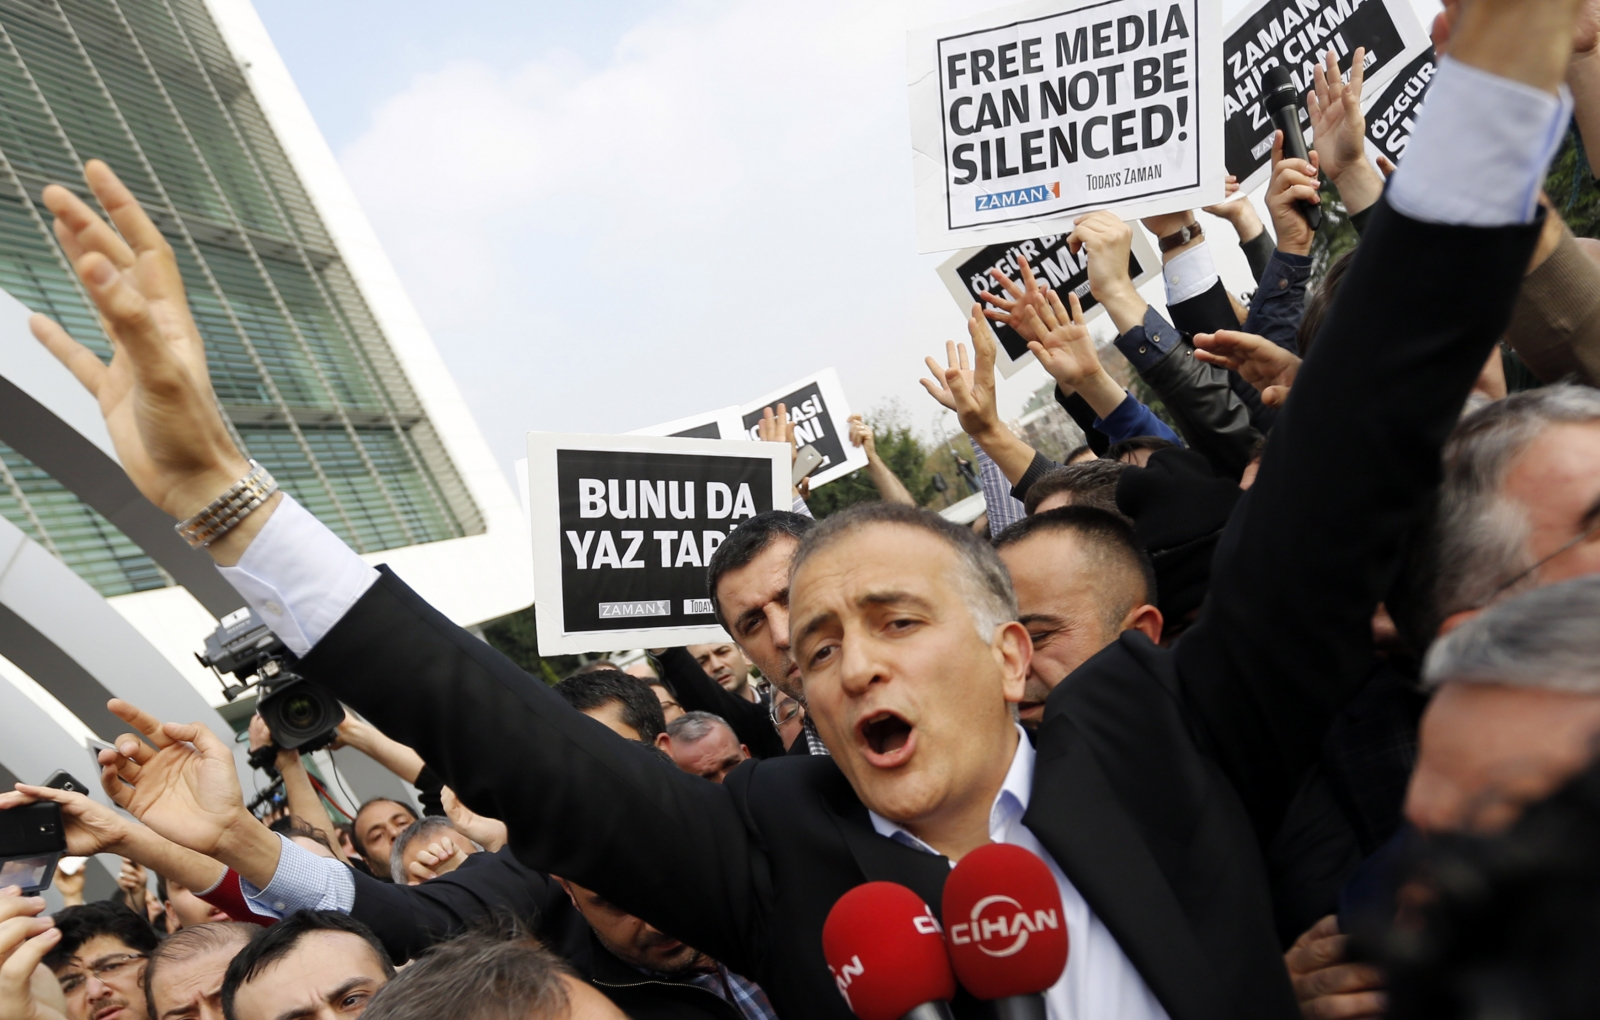 Zaman editor-in-chief Ekrem Dumanli, surrounded by his colleagues and plainclothes police officers (C), reacts as he leaves the headquarters of Zaman daily newspaper in Istanbul